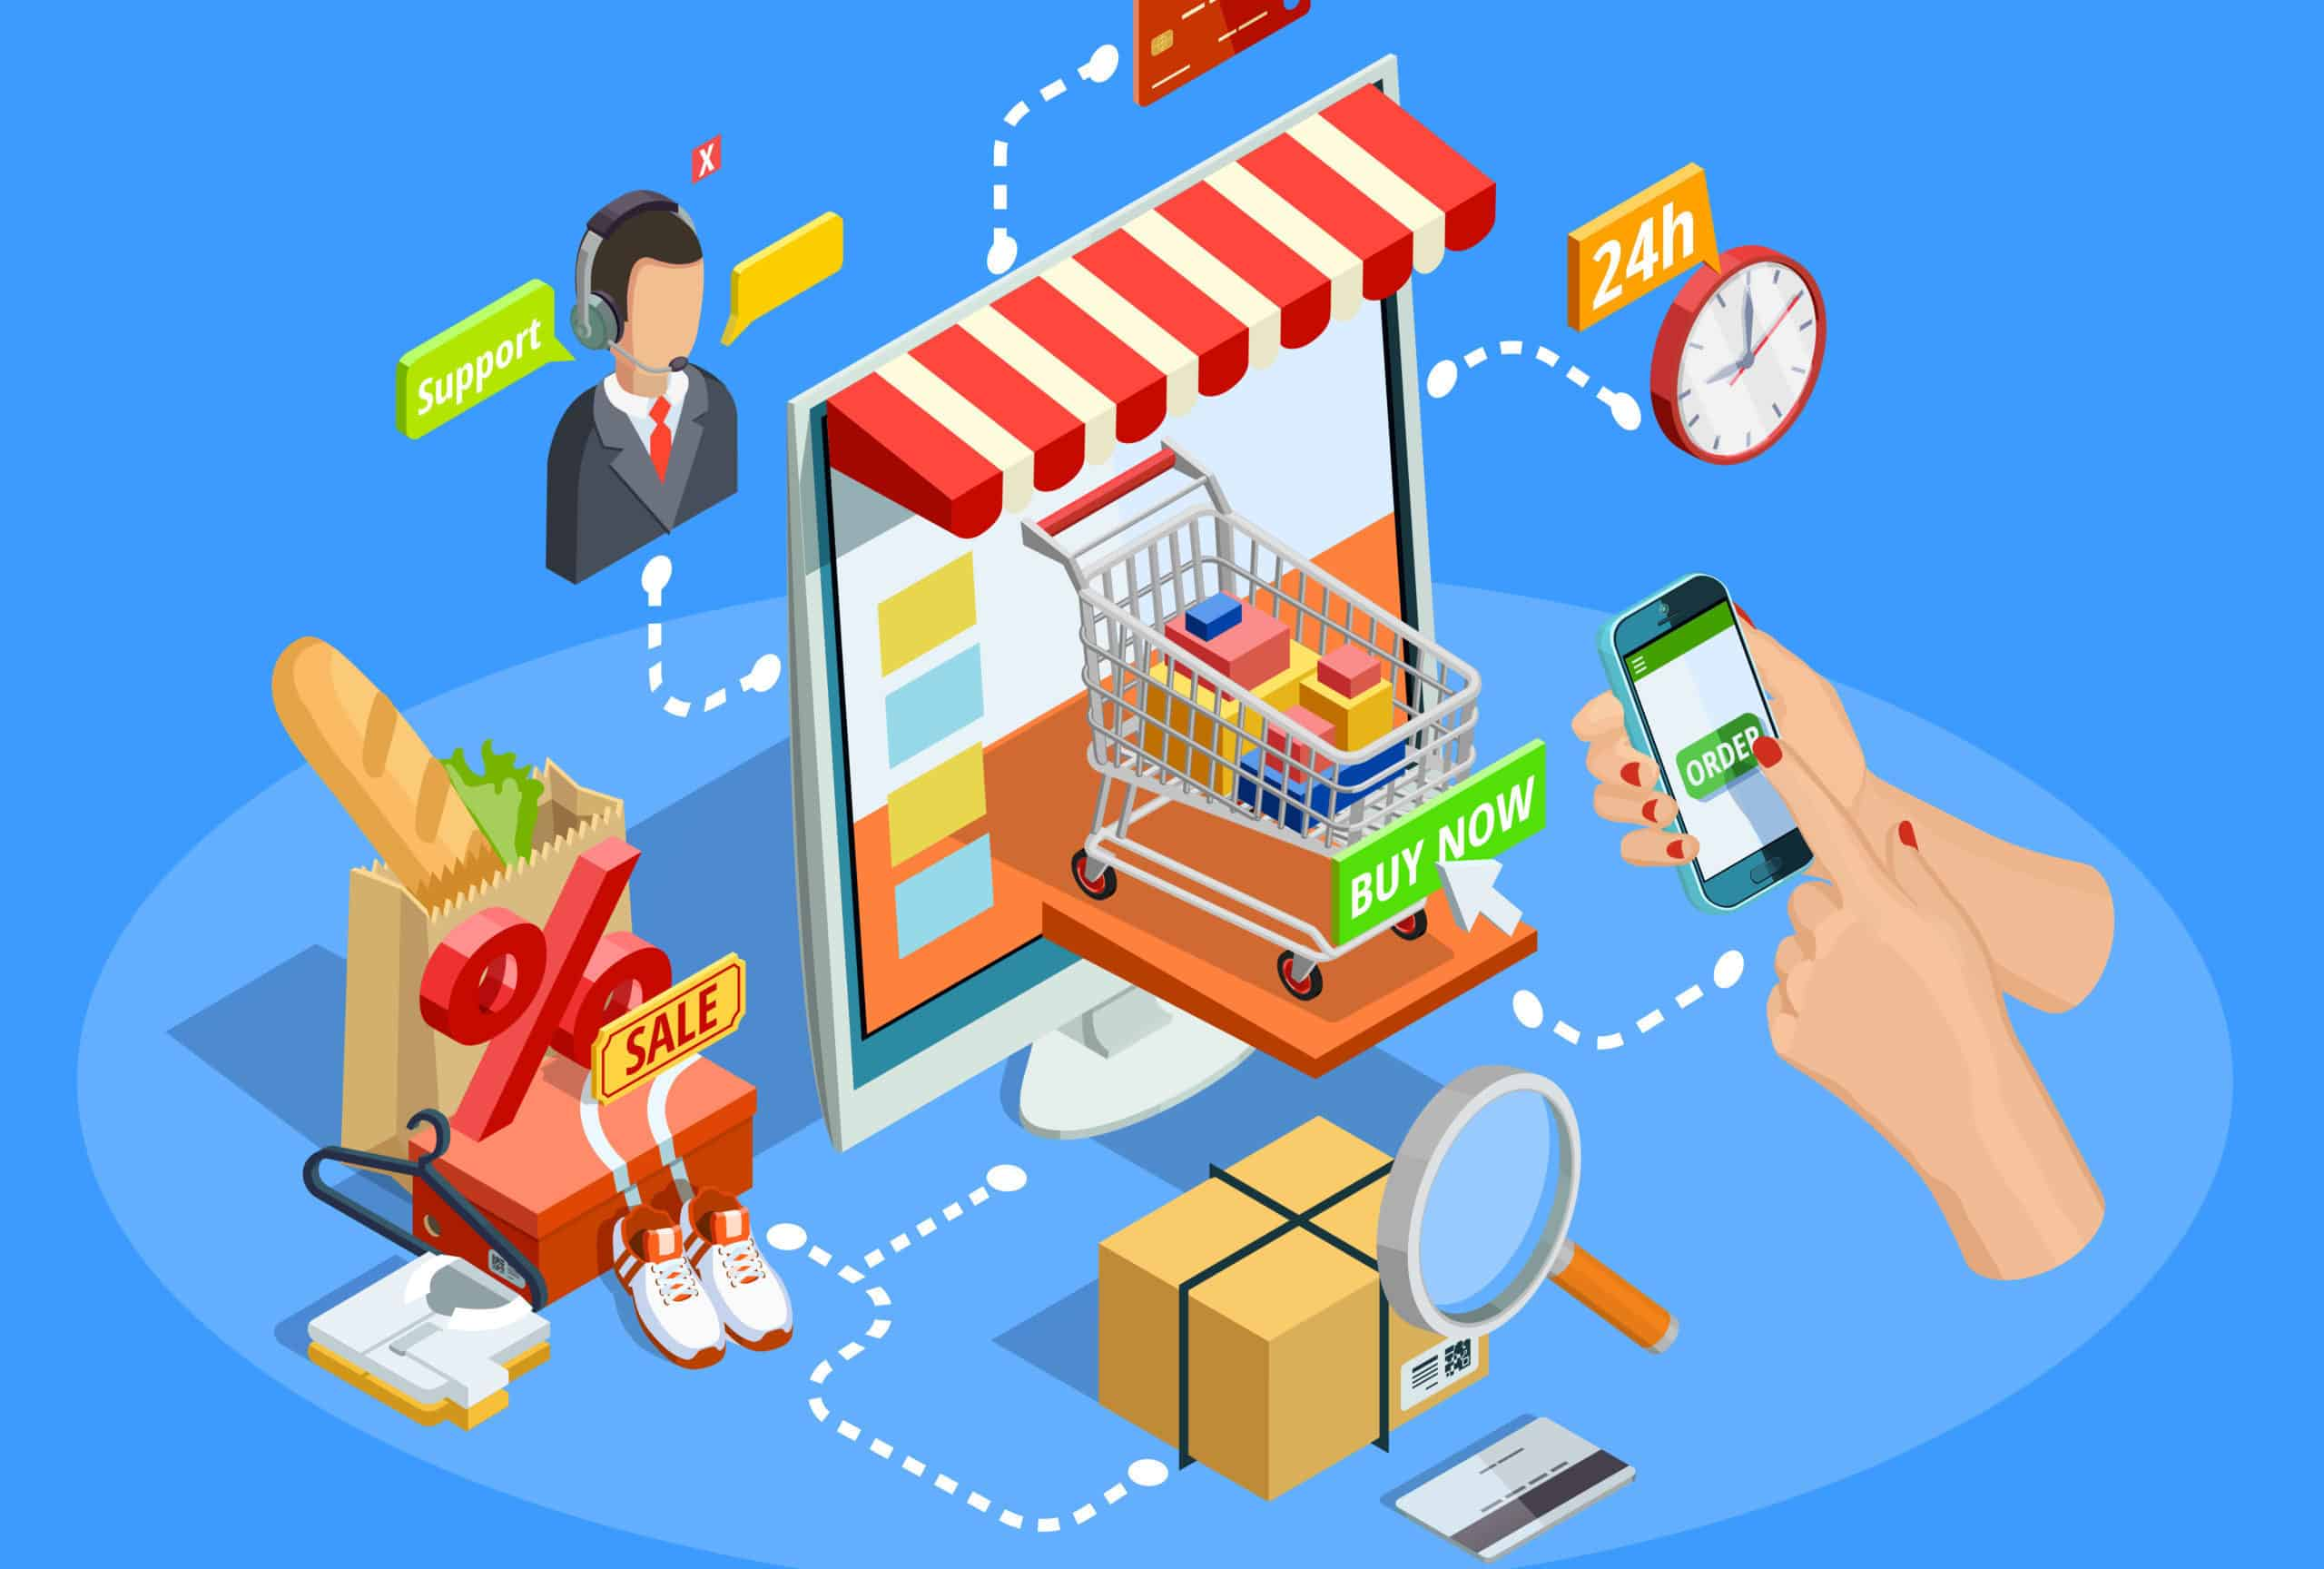 Increase visibility for e-commerce websites - Digital Trails